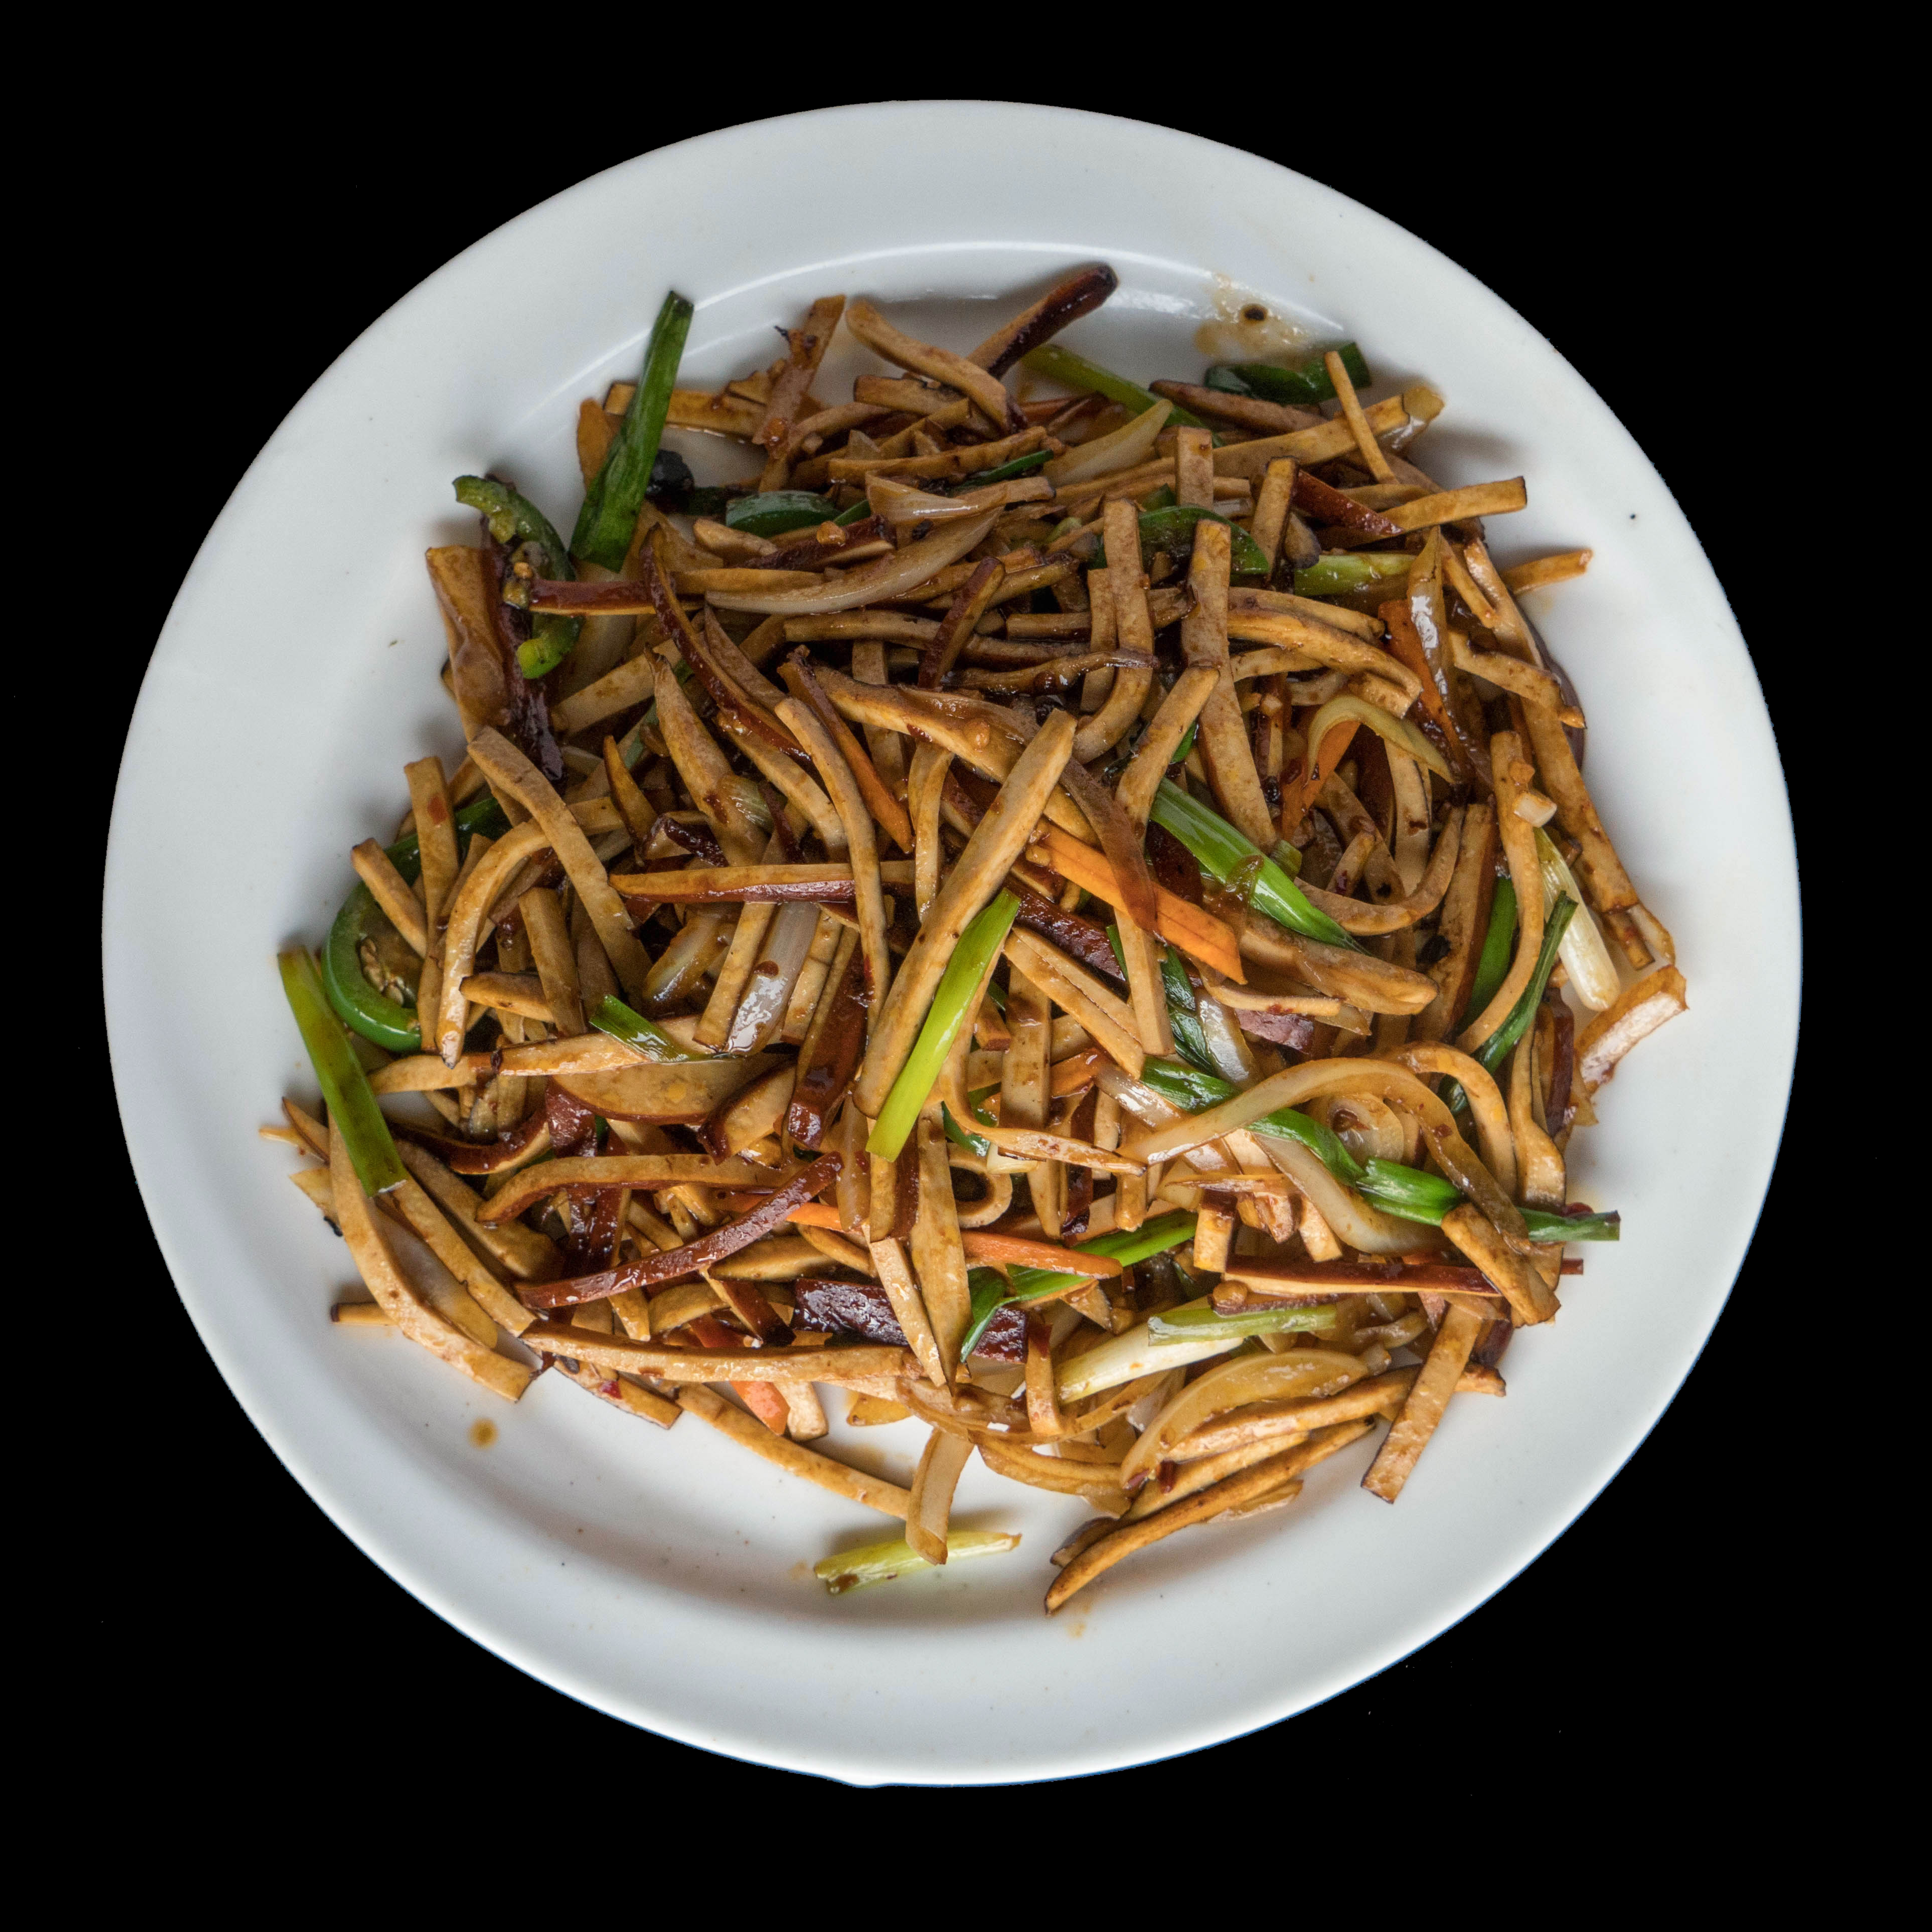 64. 辣炒豆干 Spicy Bean Sauce wok Shredded Bean Curd Image